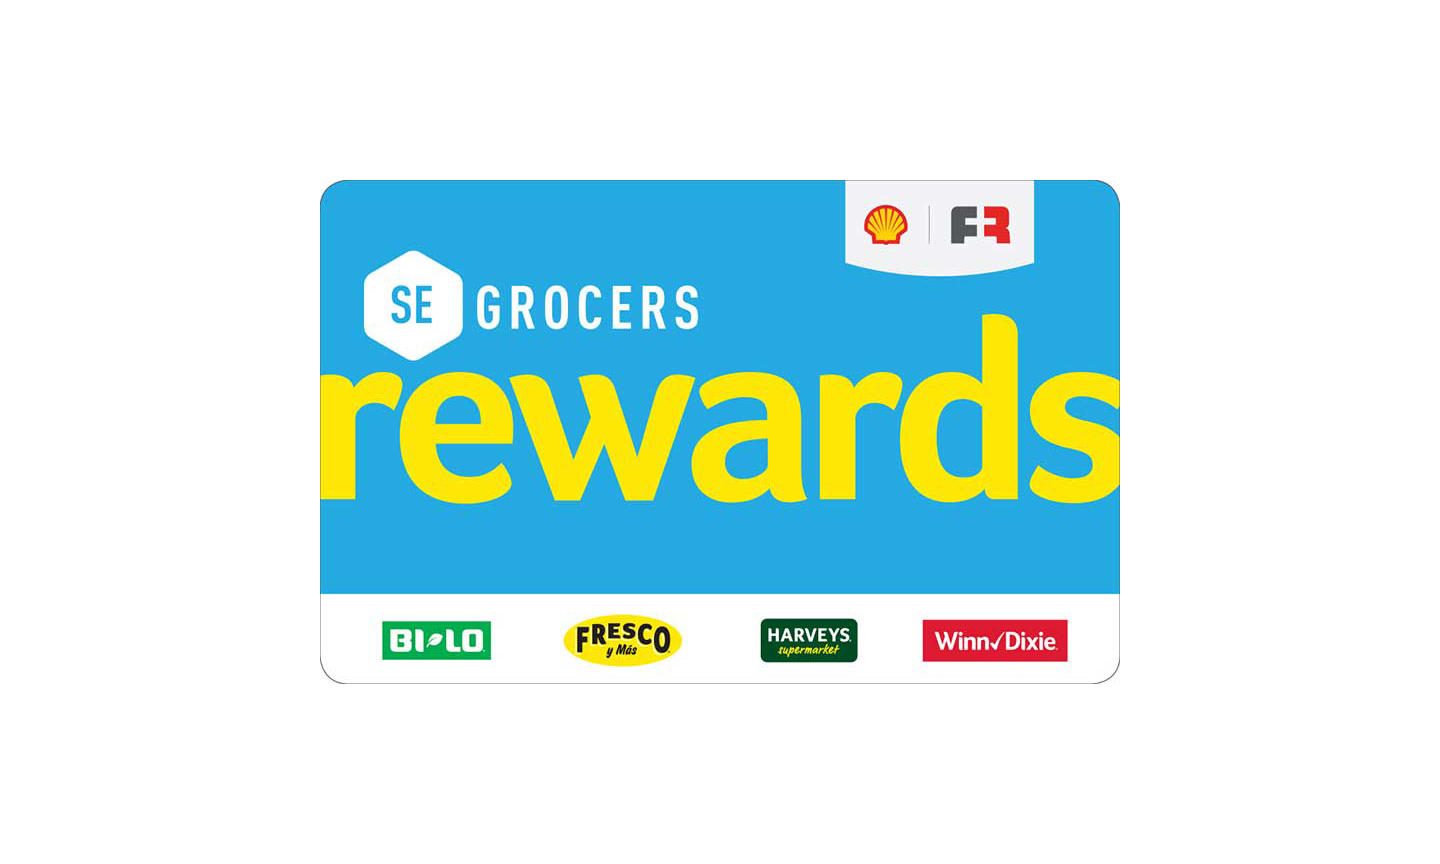 SE Grocers rewards card